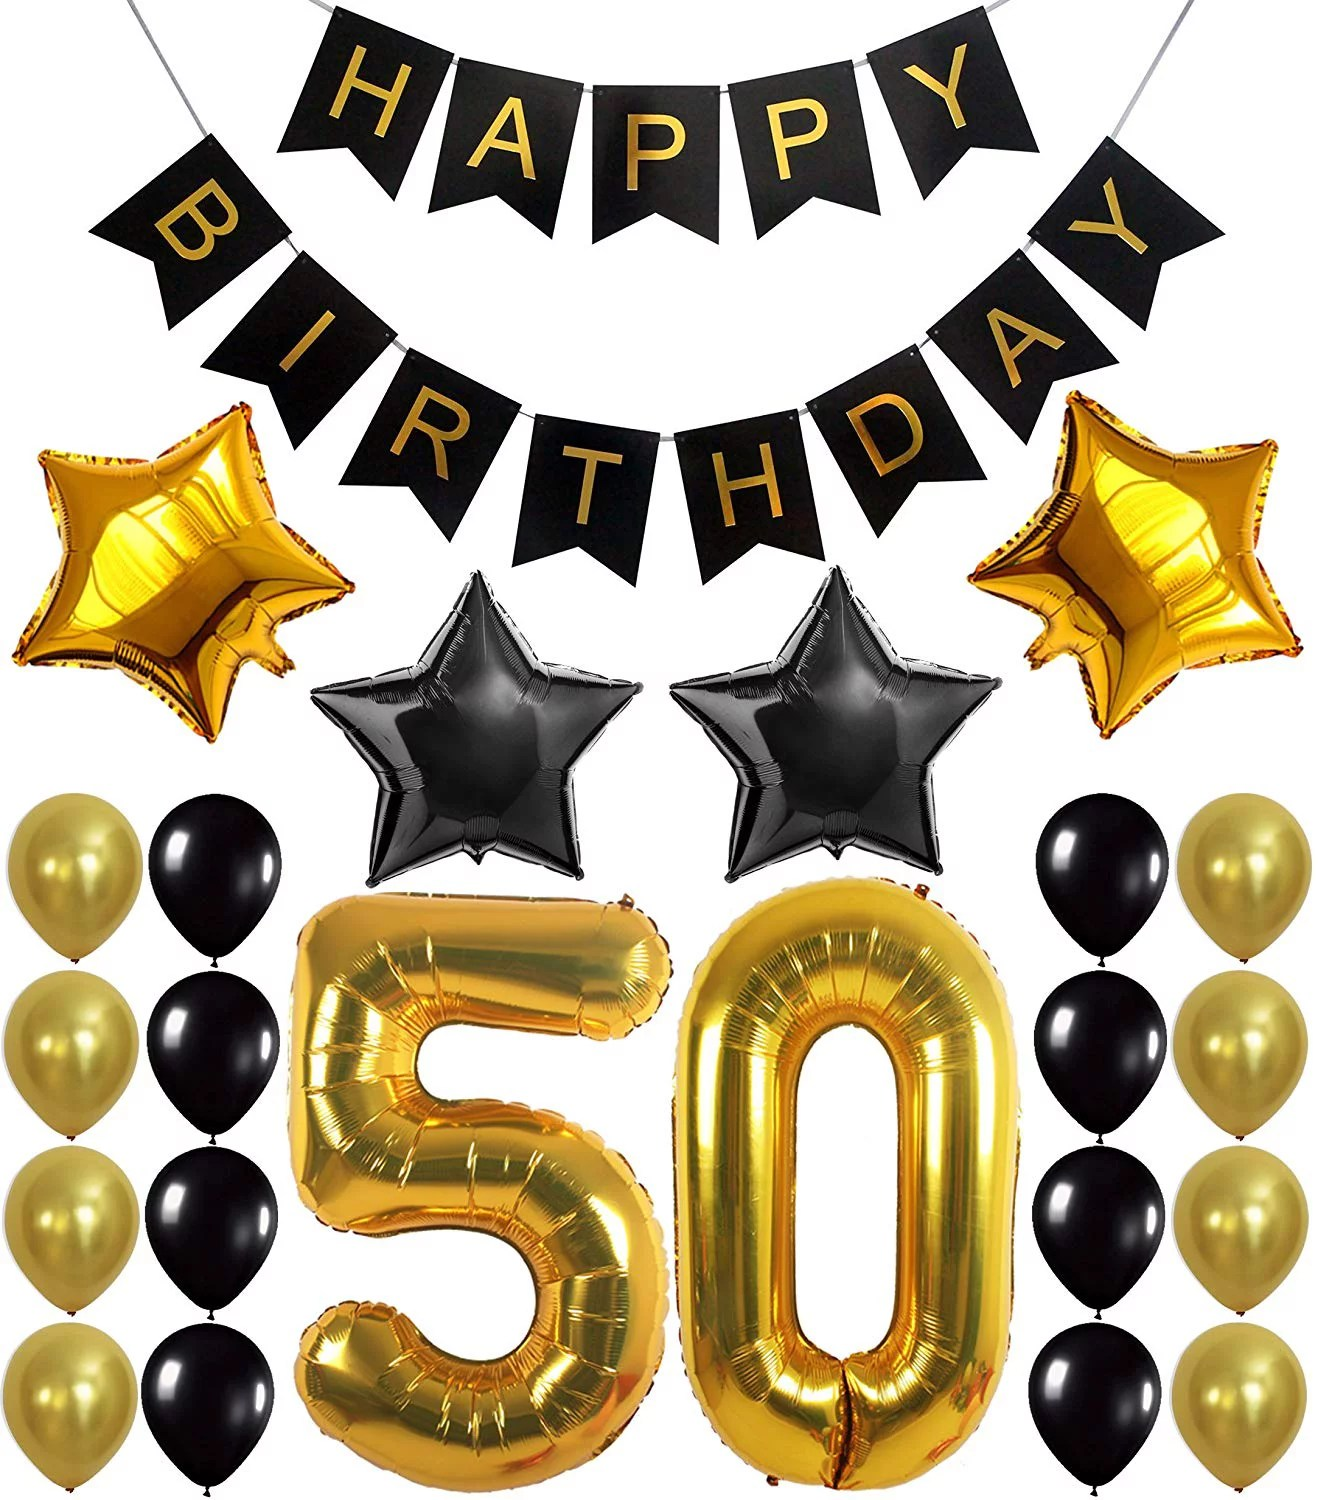 50th Birthday Decorations Kit Large Pack Of 26 Number 5 And 0 Party Balloons Supplies Black Happy Birthday Banner Perfect For 50 Years Old Decor Walmart Com Walmart Com